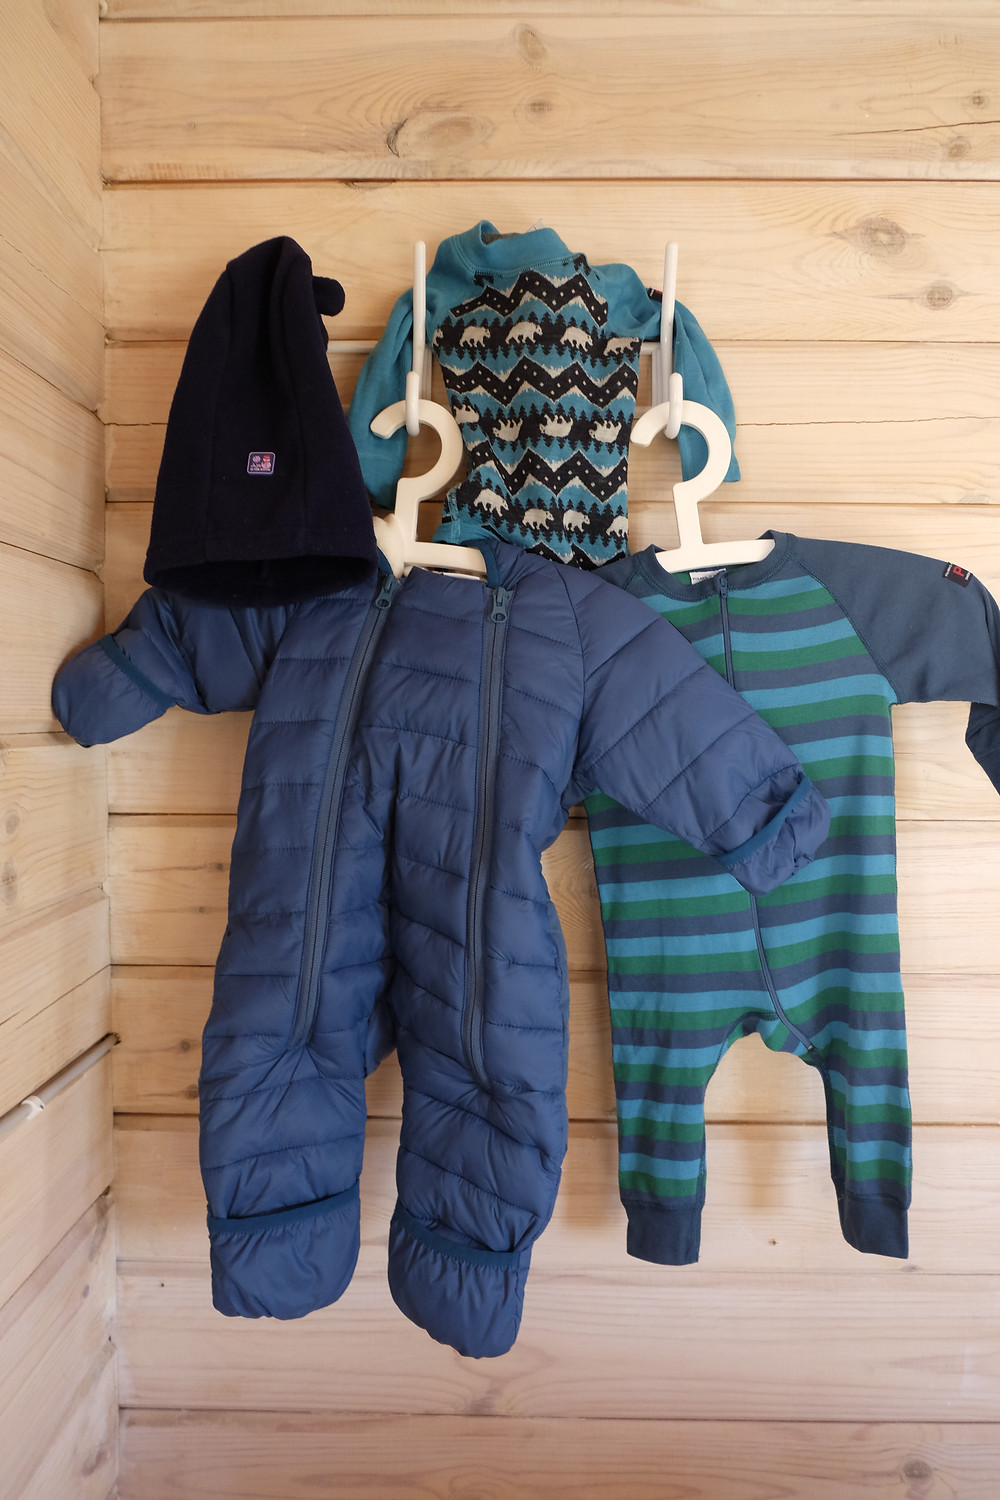 Baby thermal merino wool vest, thermal babygro, and insulated all-in-one suit all from Polarno Pyret. Baby Balaclava from JoJo Maman Bebe